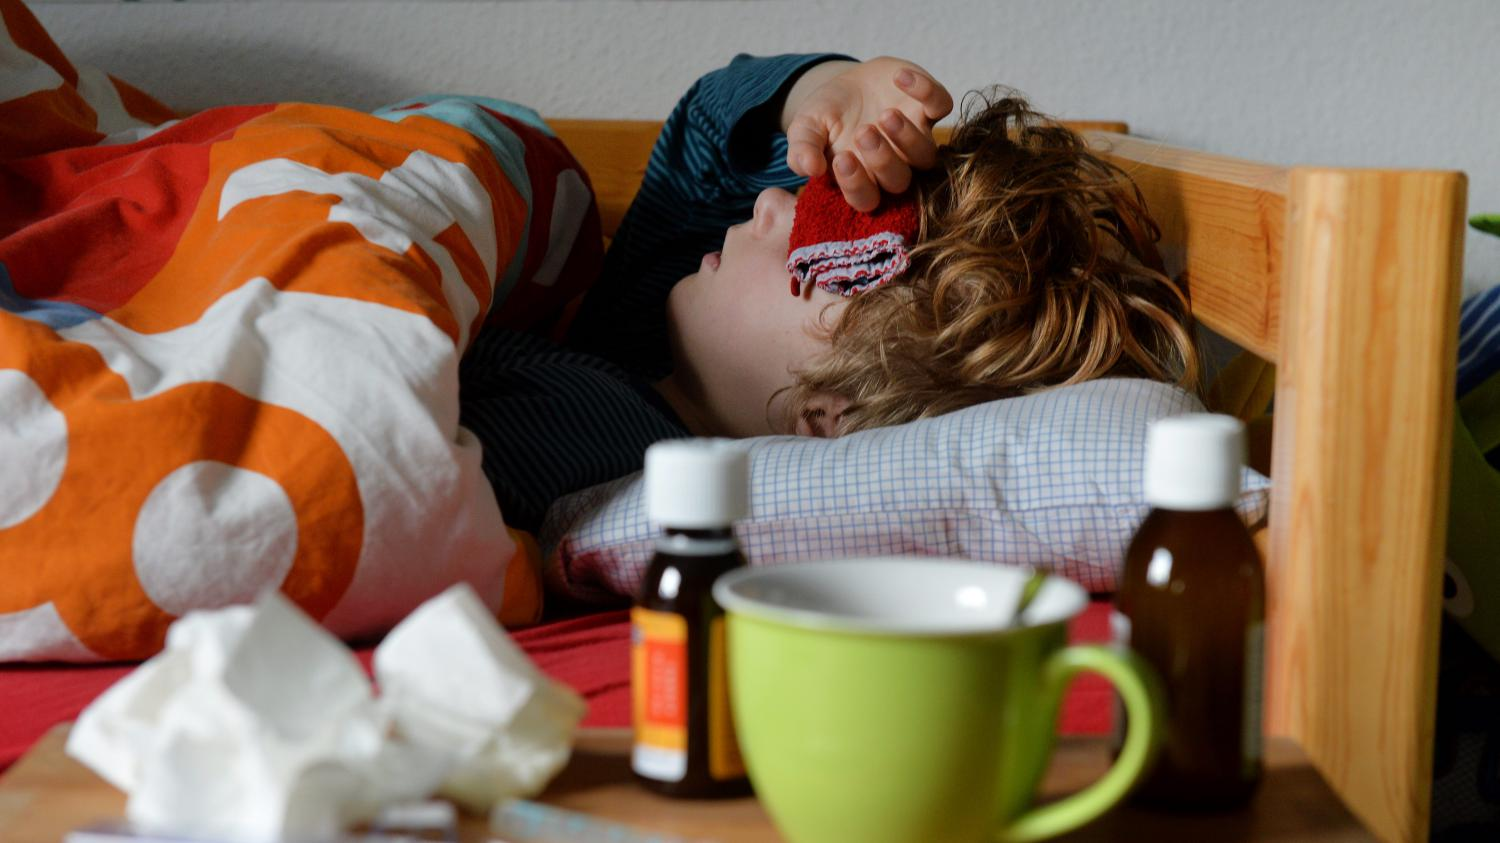 100 Remarquable Suggestions Sortir Quand On Est Malade